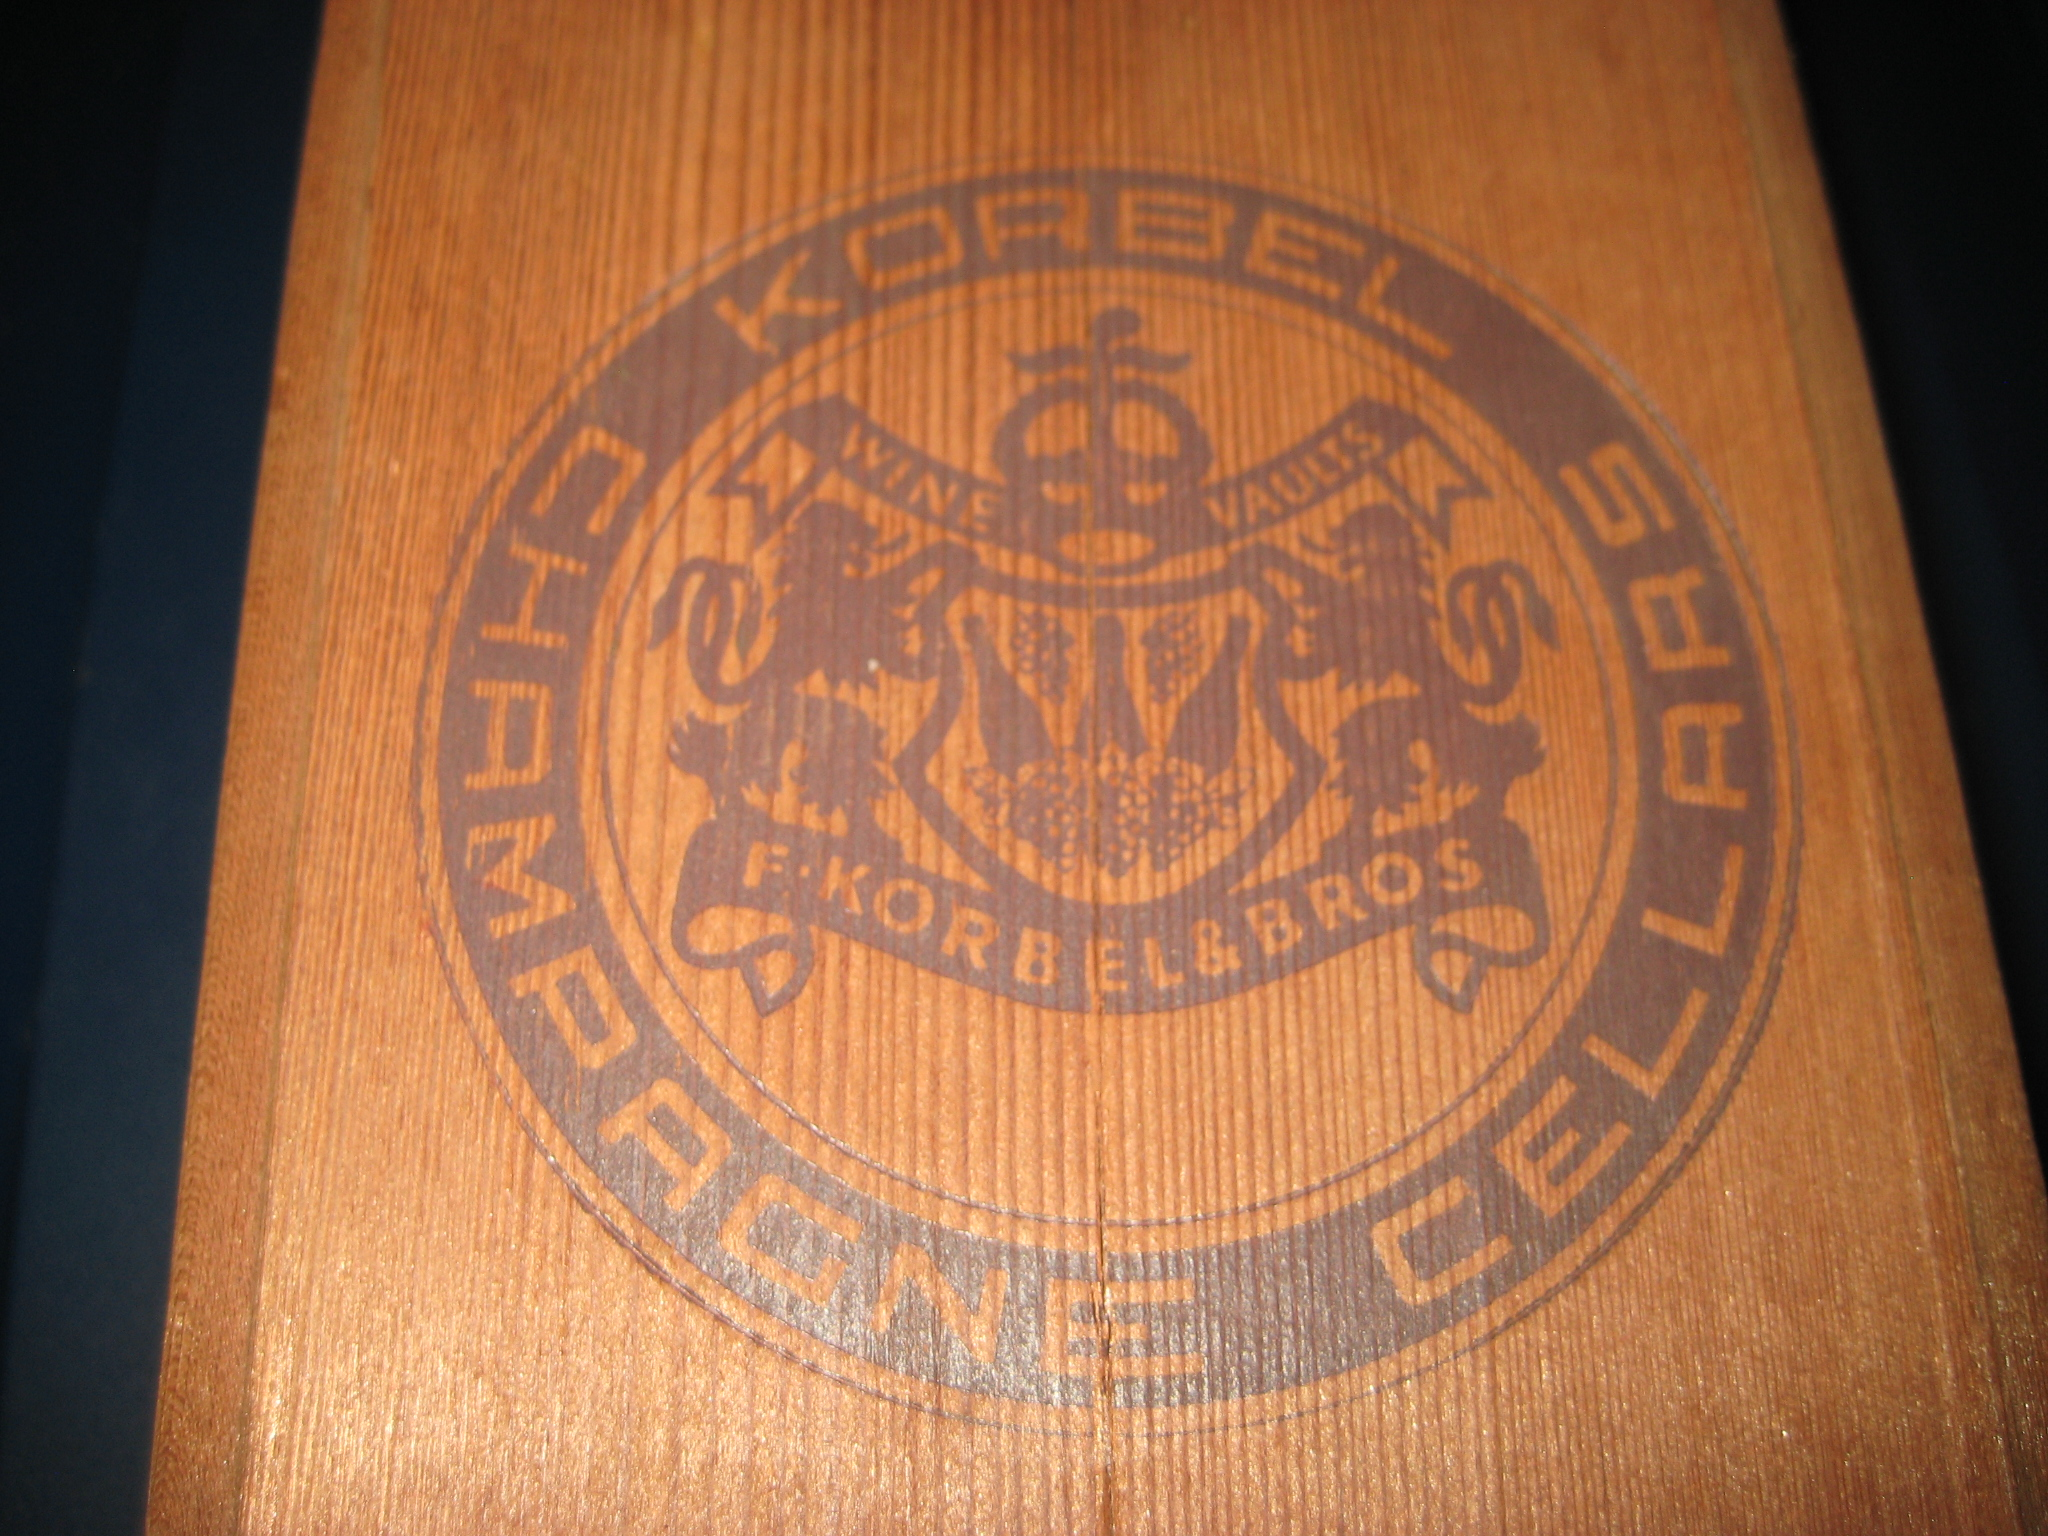 Playboy Hotel Casino Atlantic City California Redwood Korbel Champagne Box